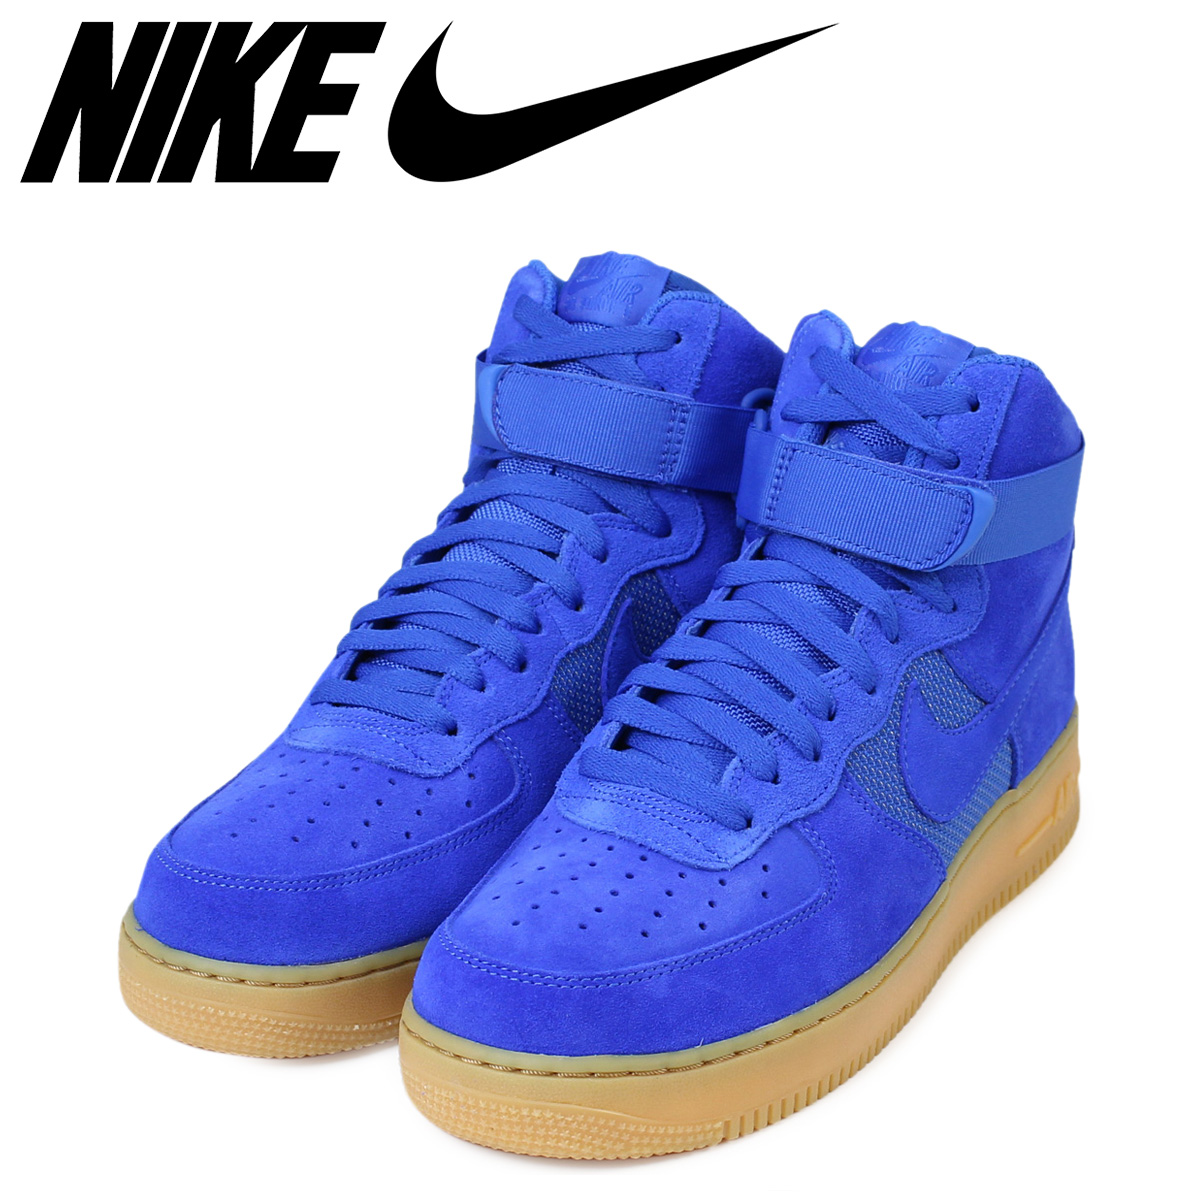 NIKE Nike air force men sneakers AIR FORCE 1 HIGH '07 LV8 806,403 400 shoes blue